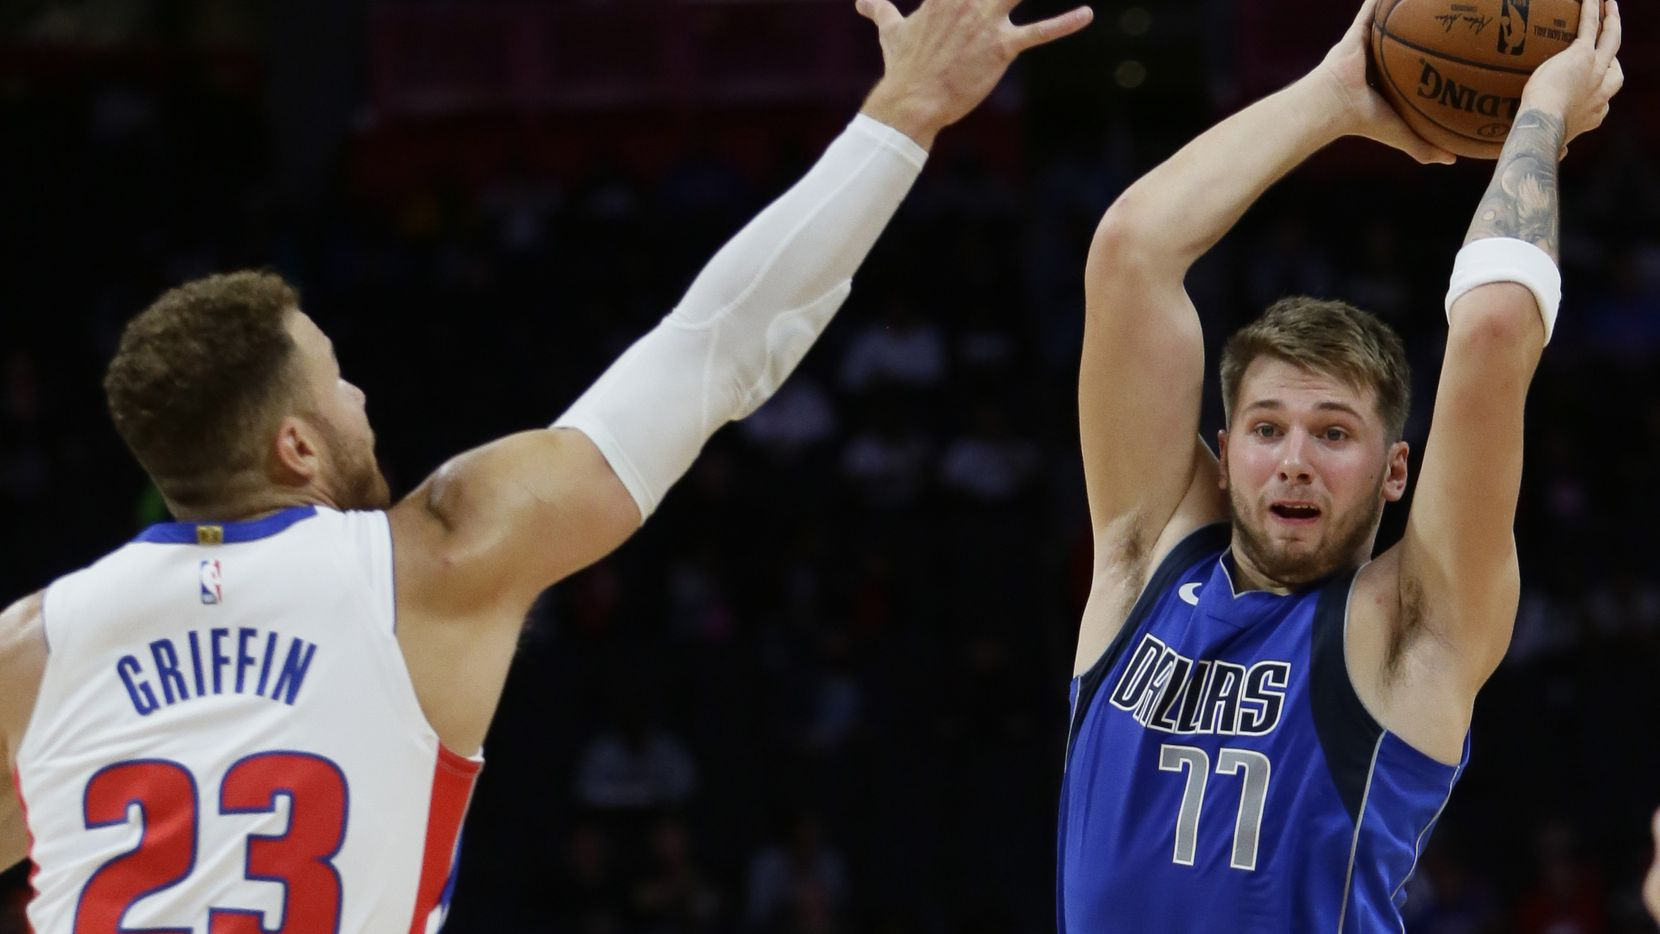 Dallas Mavericks forward Luka Doncic (77) passes the ball as Detroit Pistons forward Blake Griffin (23) defends during the second half of an NBA preseason basketball game Wednesday, Oct. 9, 2019, in Detroit.